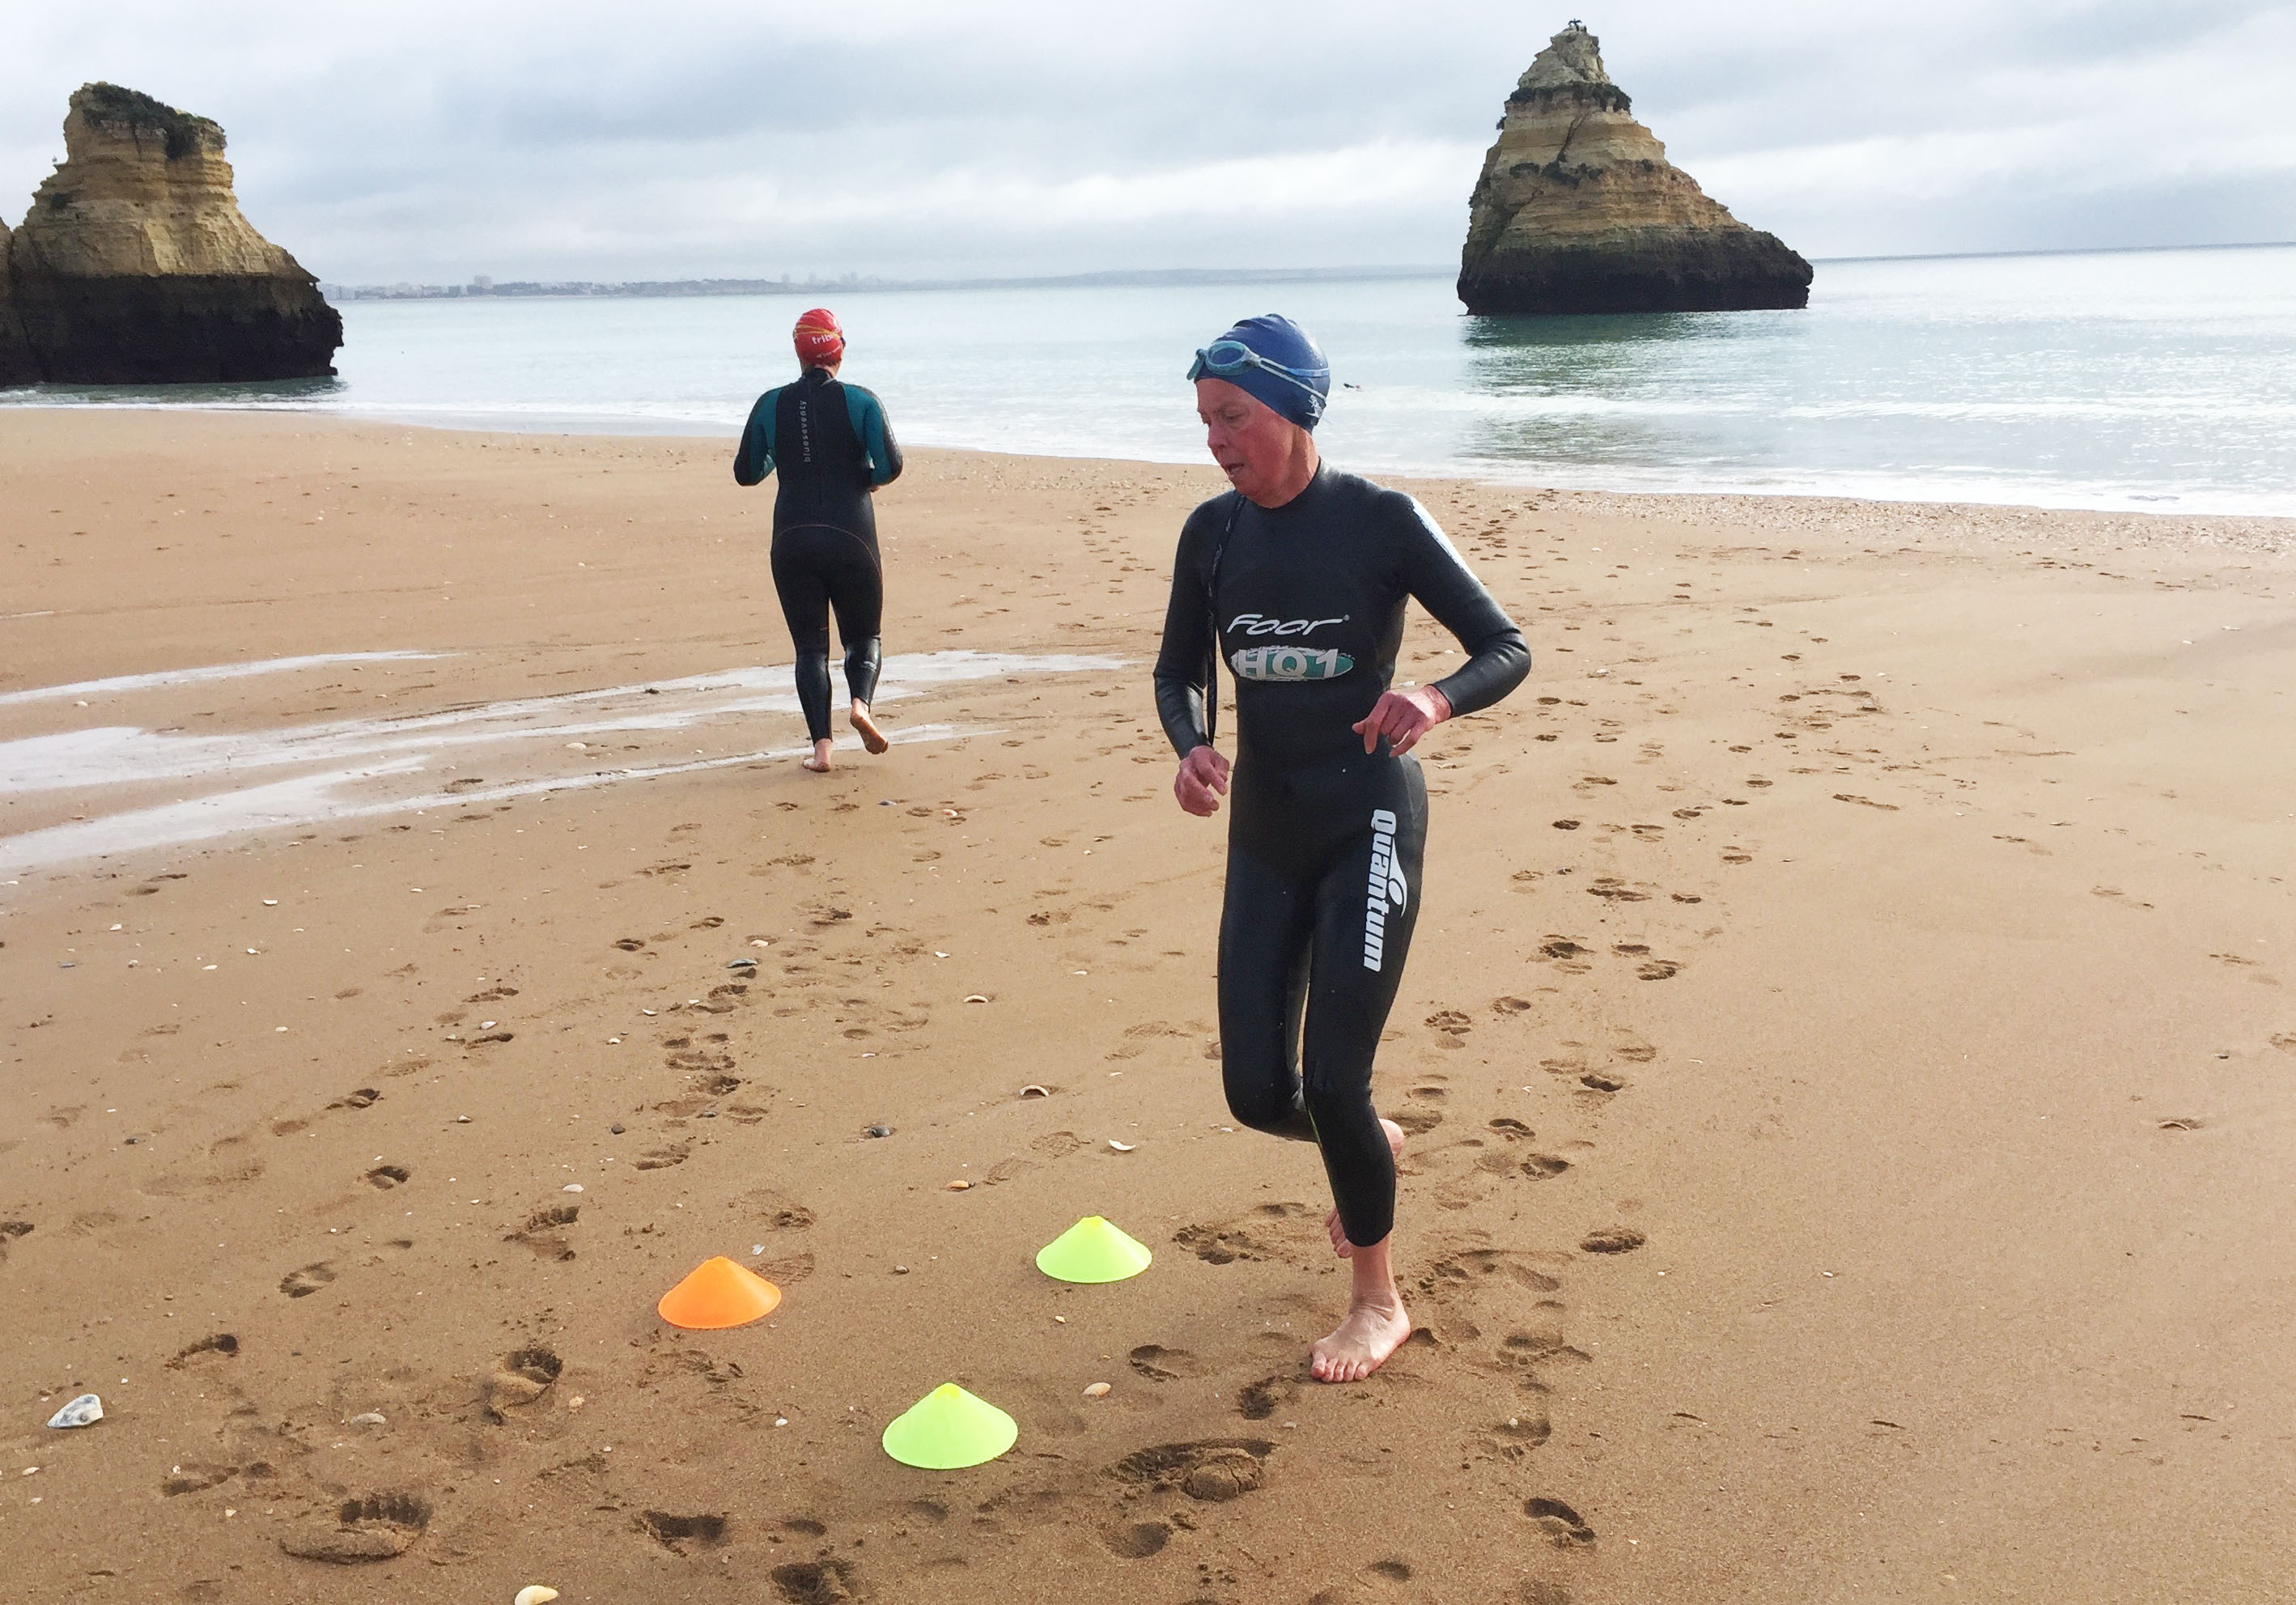 Aquathlon team relay with Embrace Sports